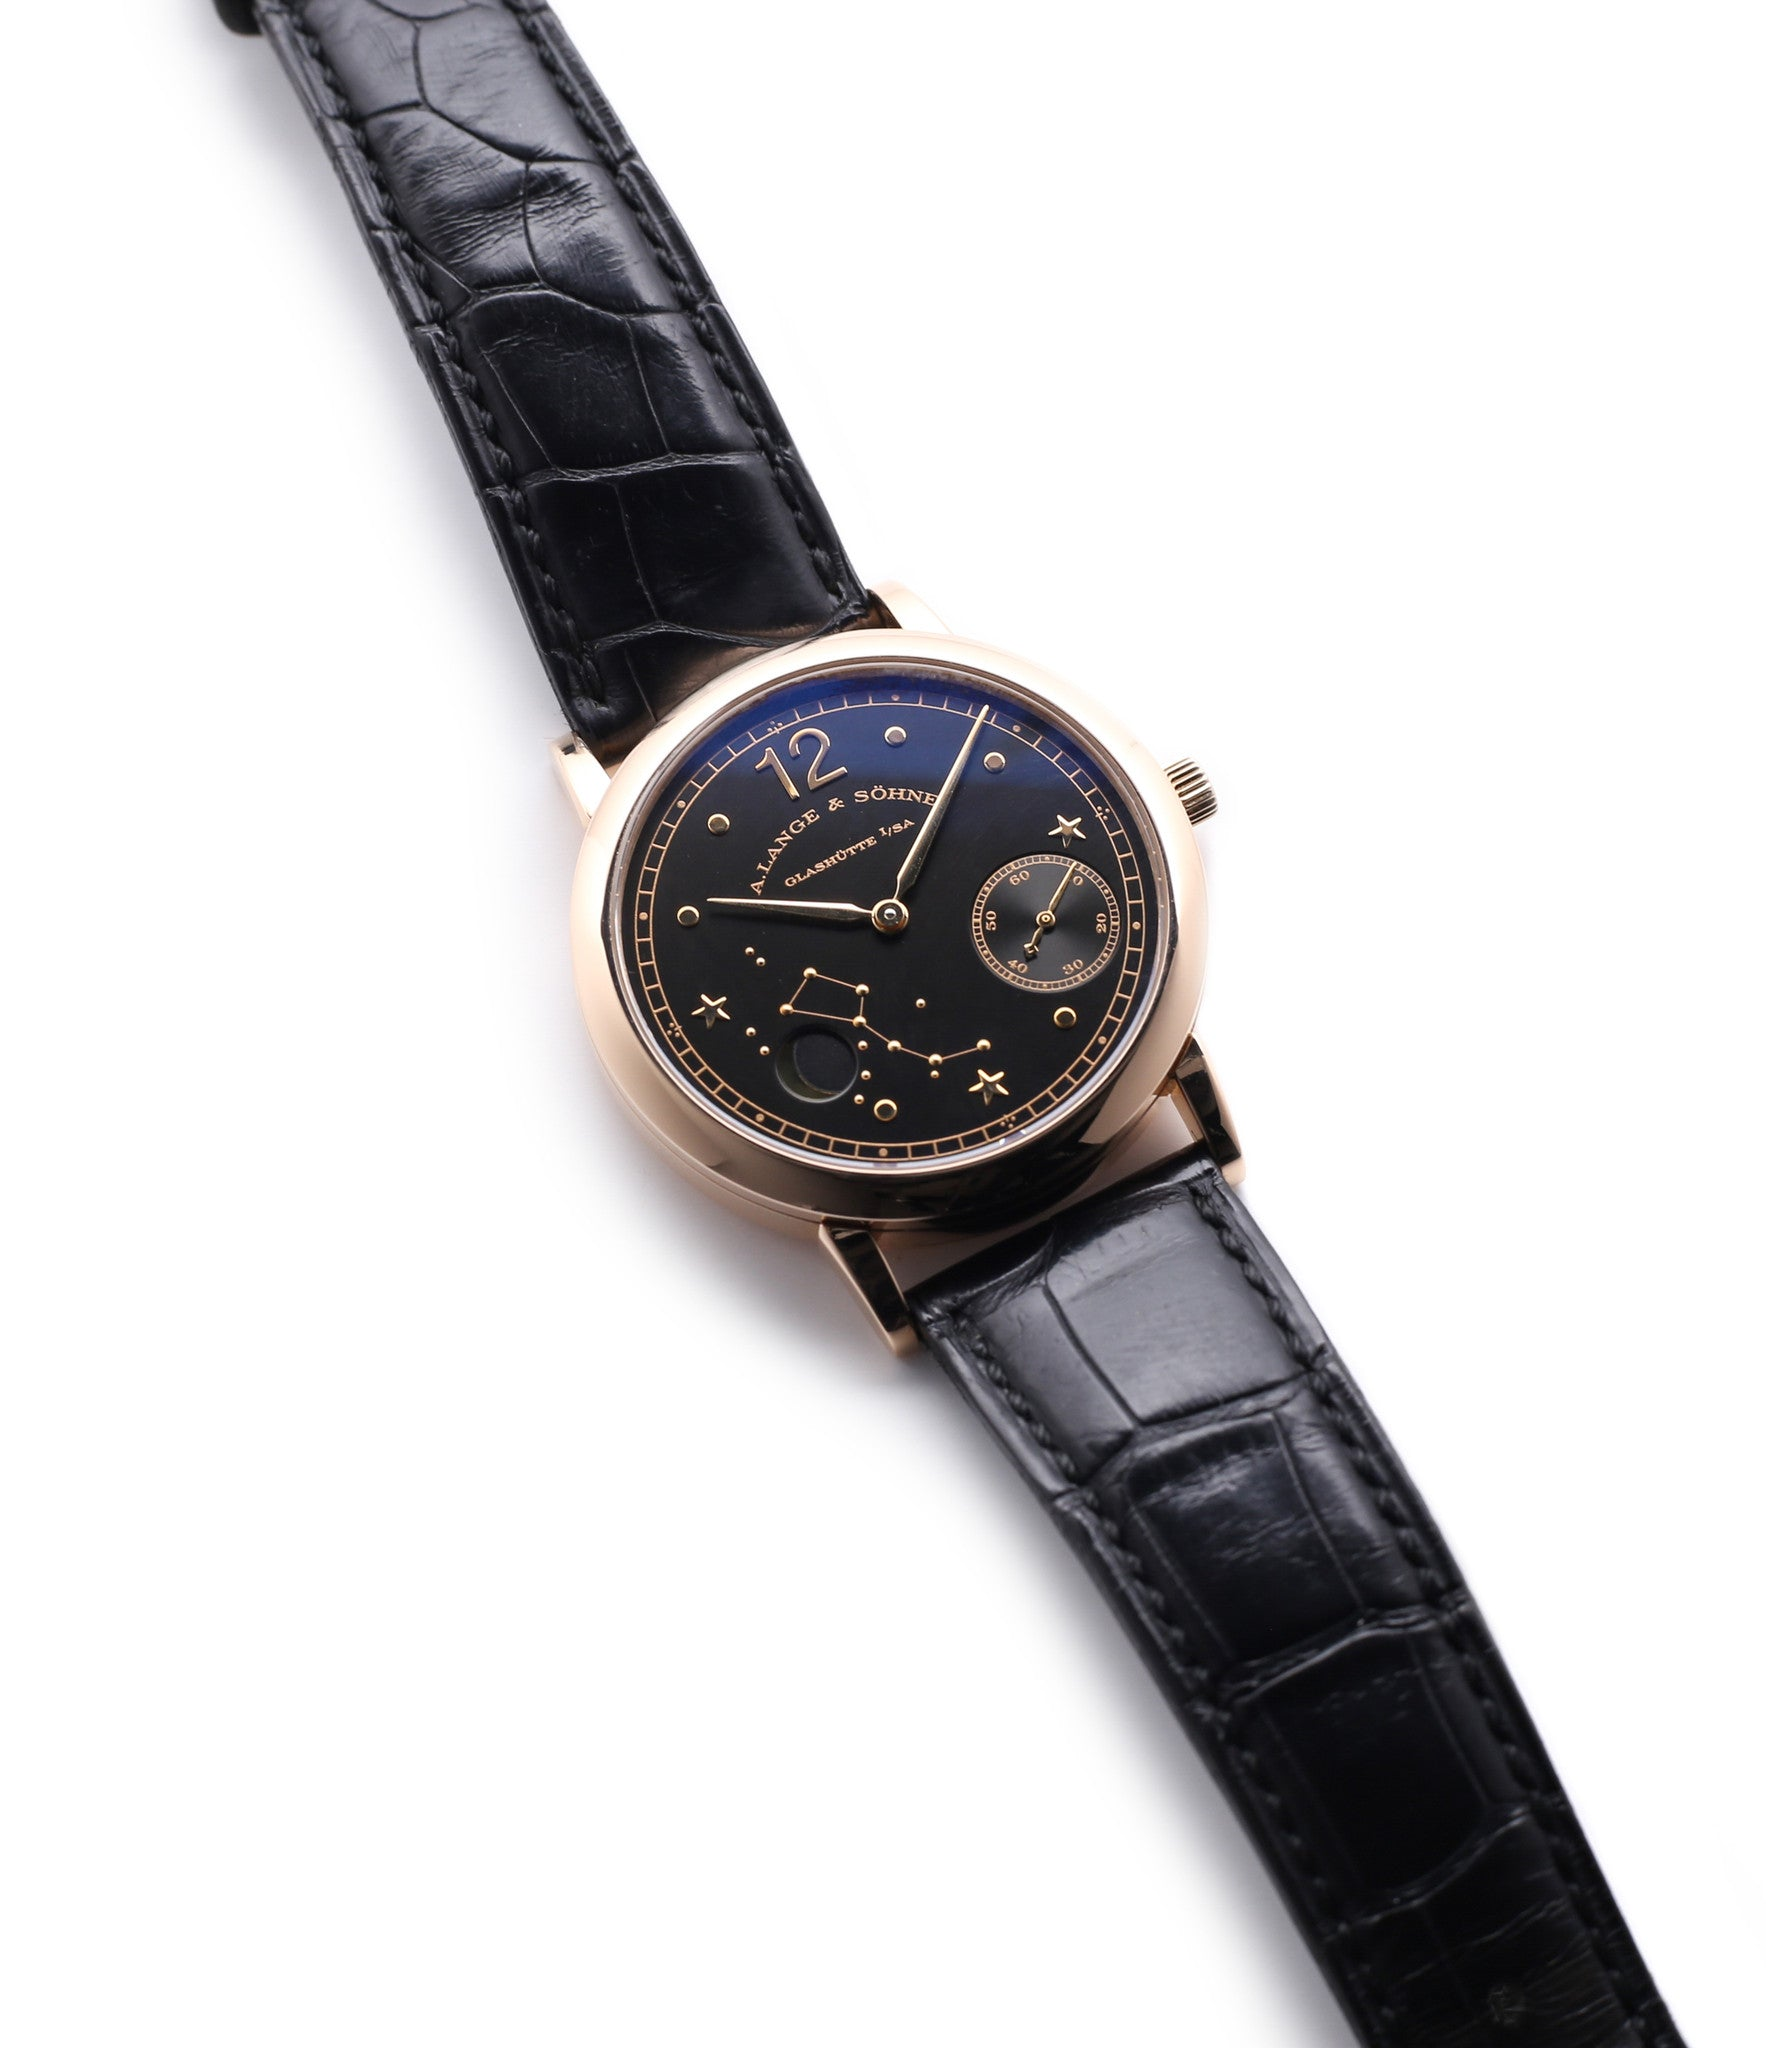 buy rare A. Lange & Söhne 1815 Moonphase Hommage a Emil Lange 1849-1922 rose gold black dial watch at A Collected Man curated platform of rare and vintage watches